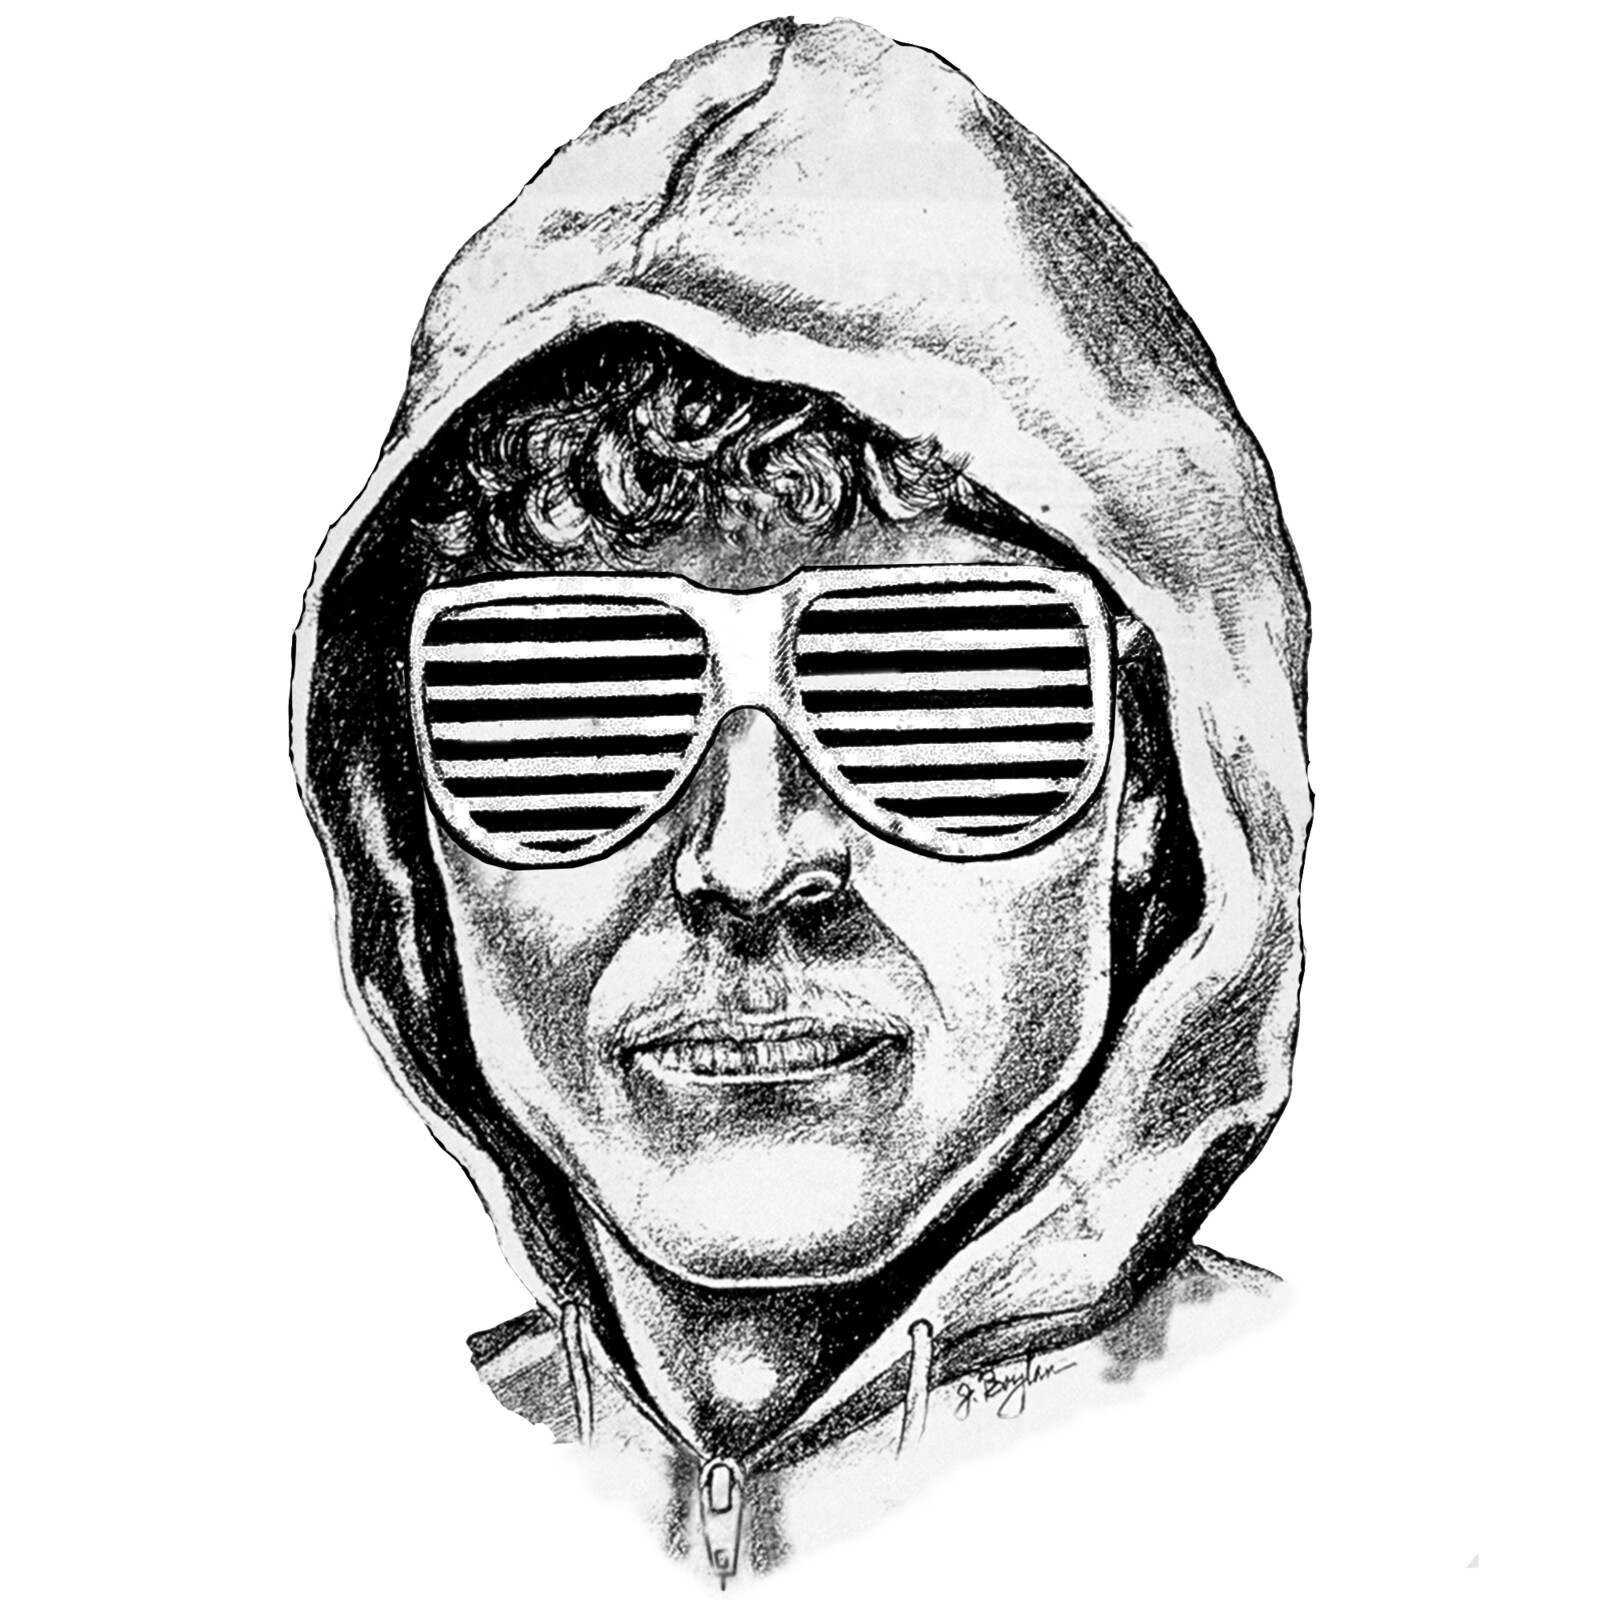 The final version of the Cool Unabomber graphic